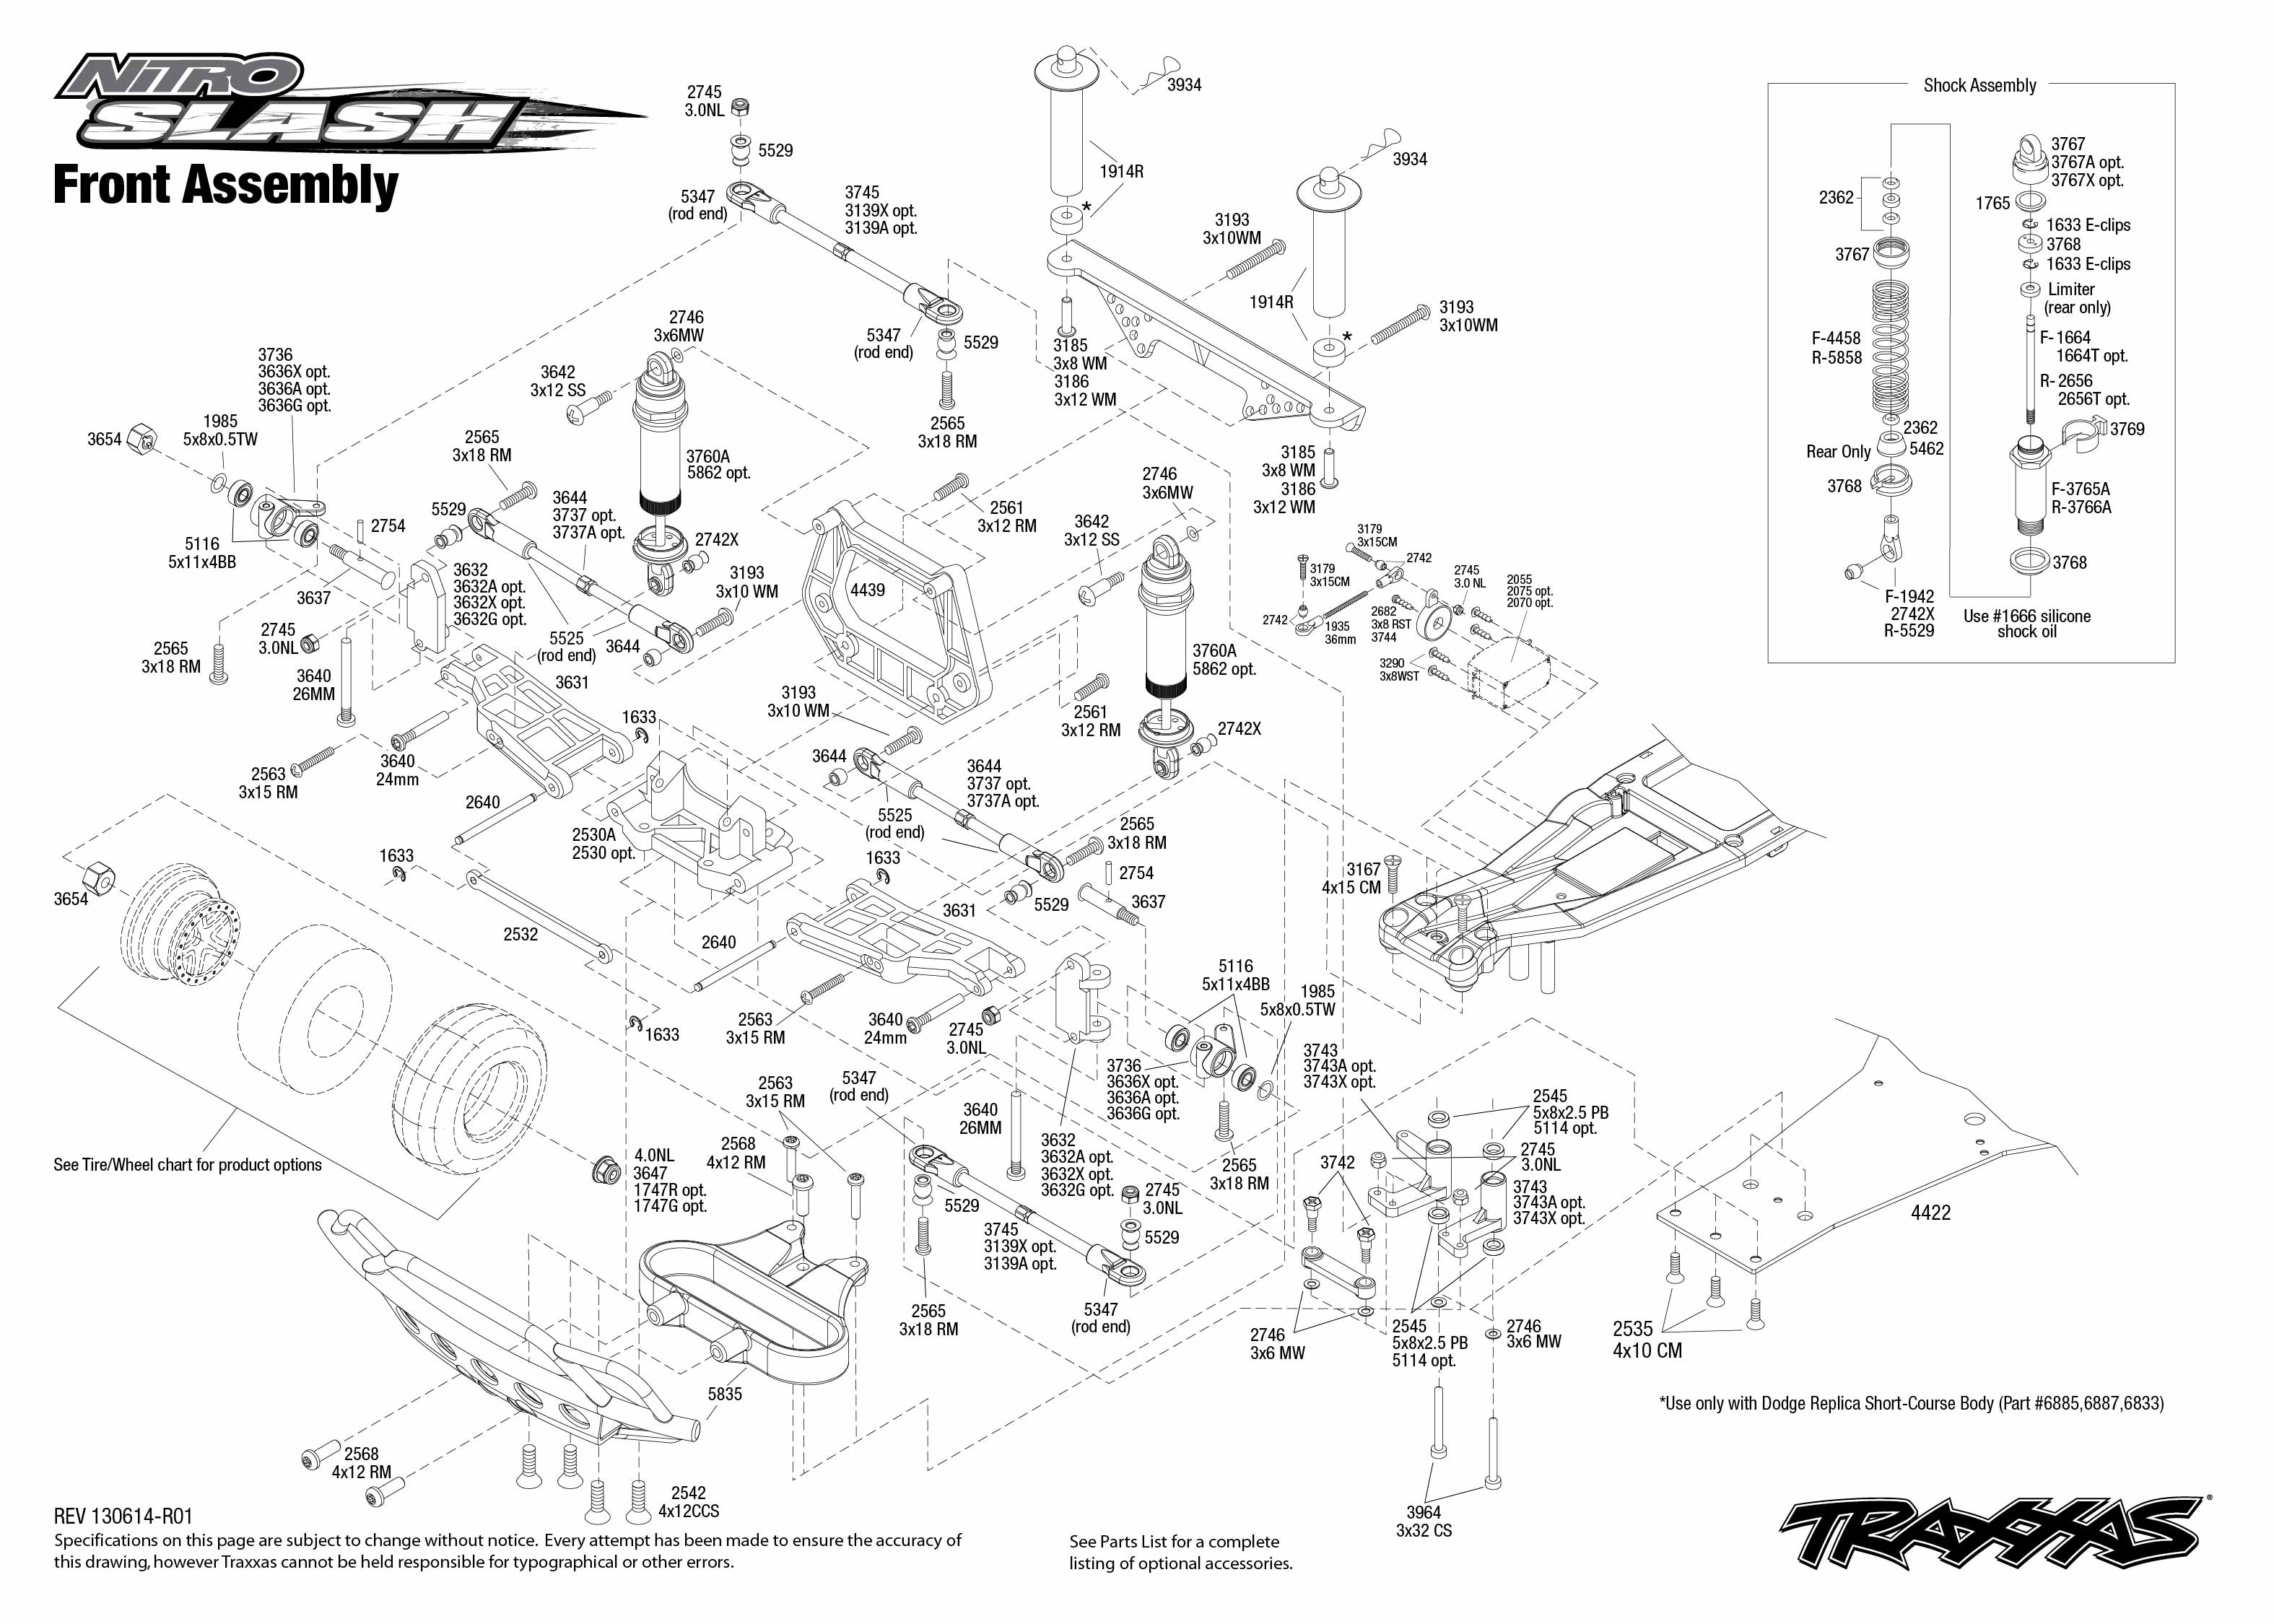 hpi savage 25 parts diagram how to install a car stereo system wiring diagrams rc nitro engine best free